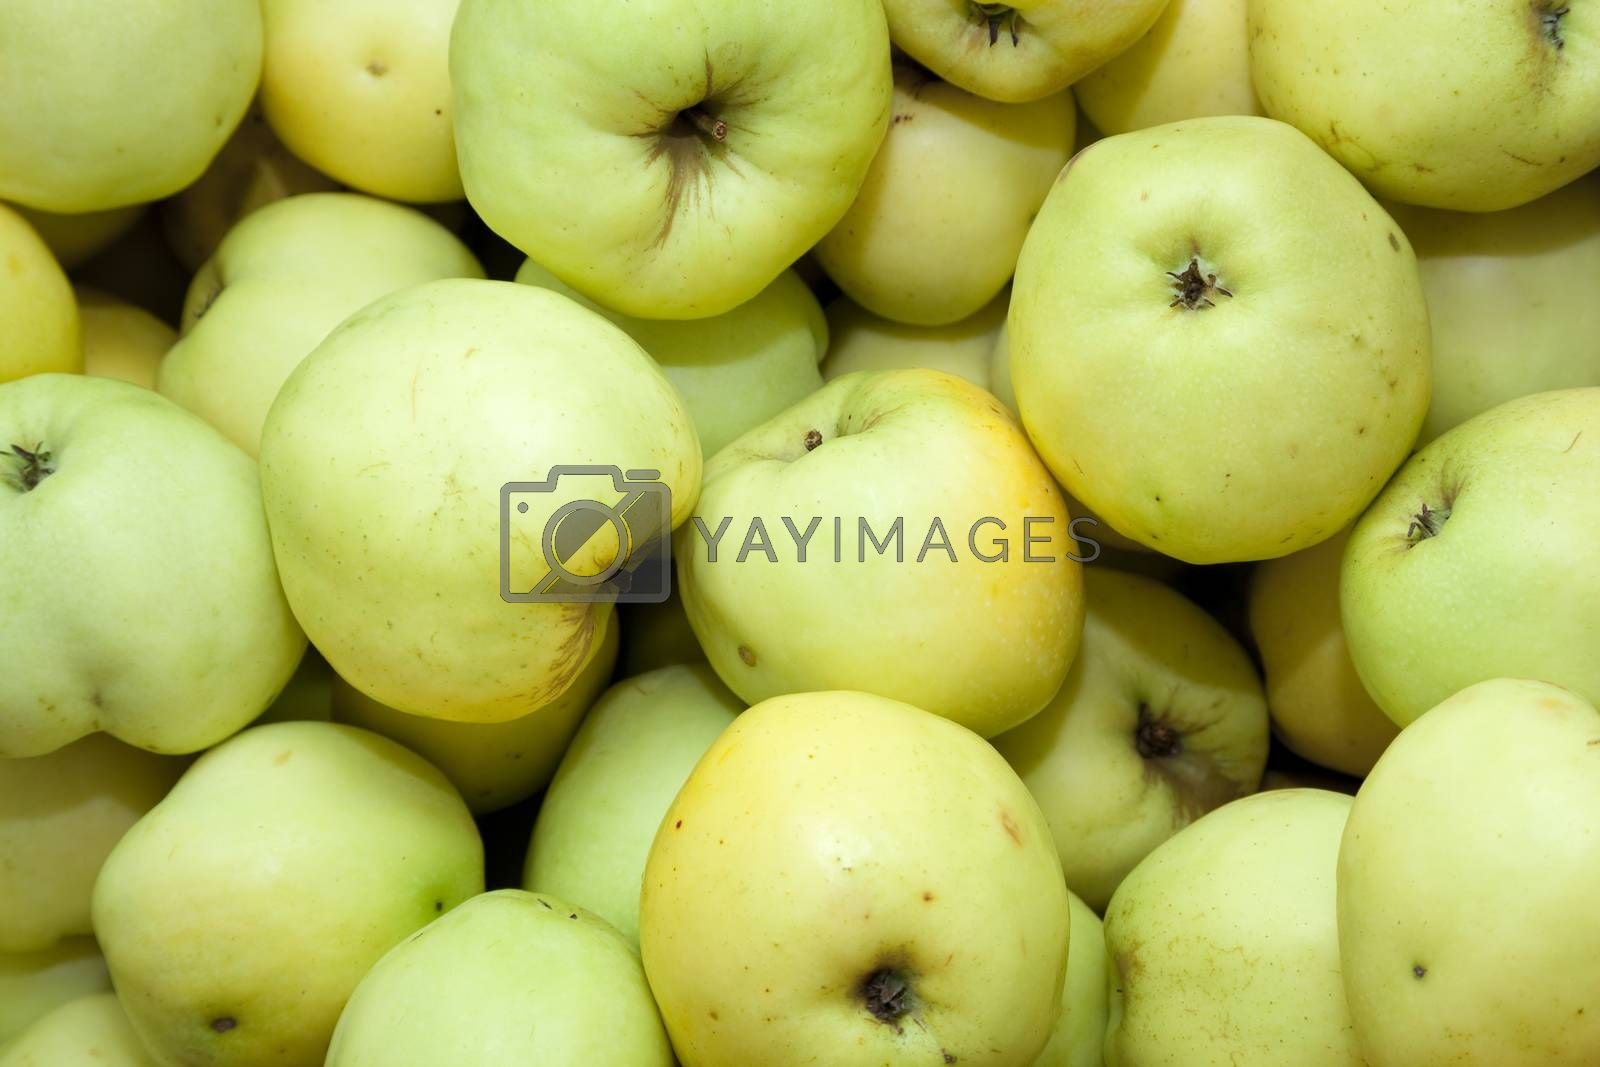 green apple (Malus domestica Borkh) as background